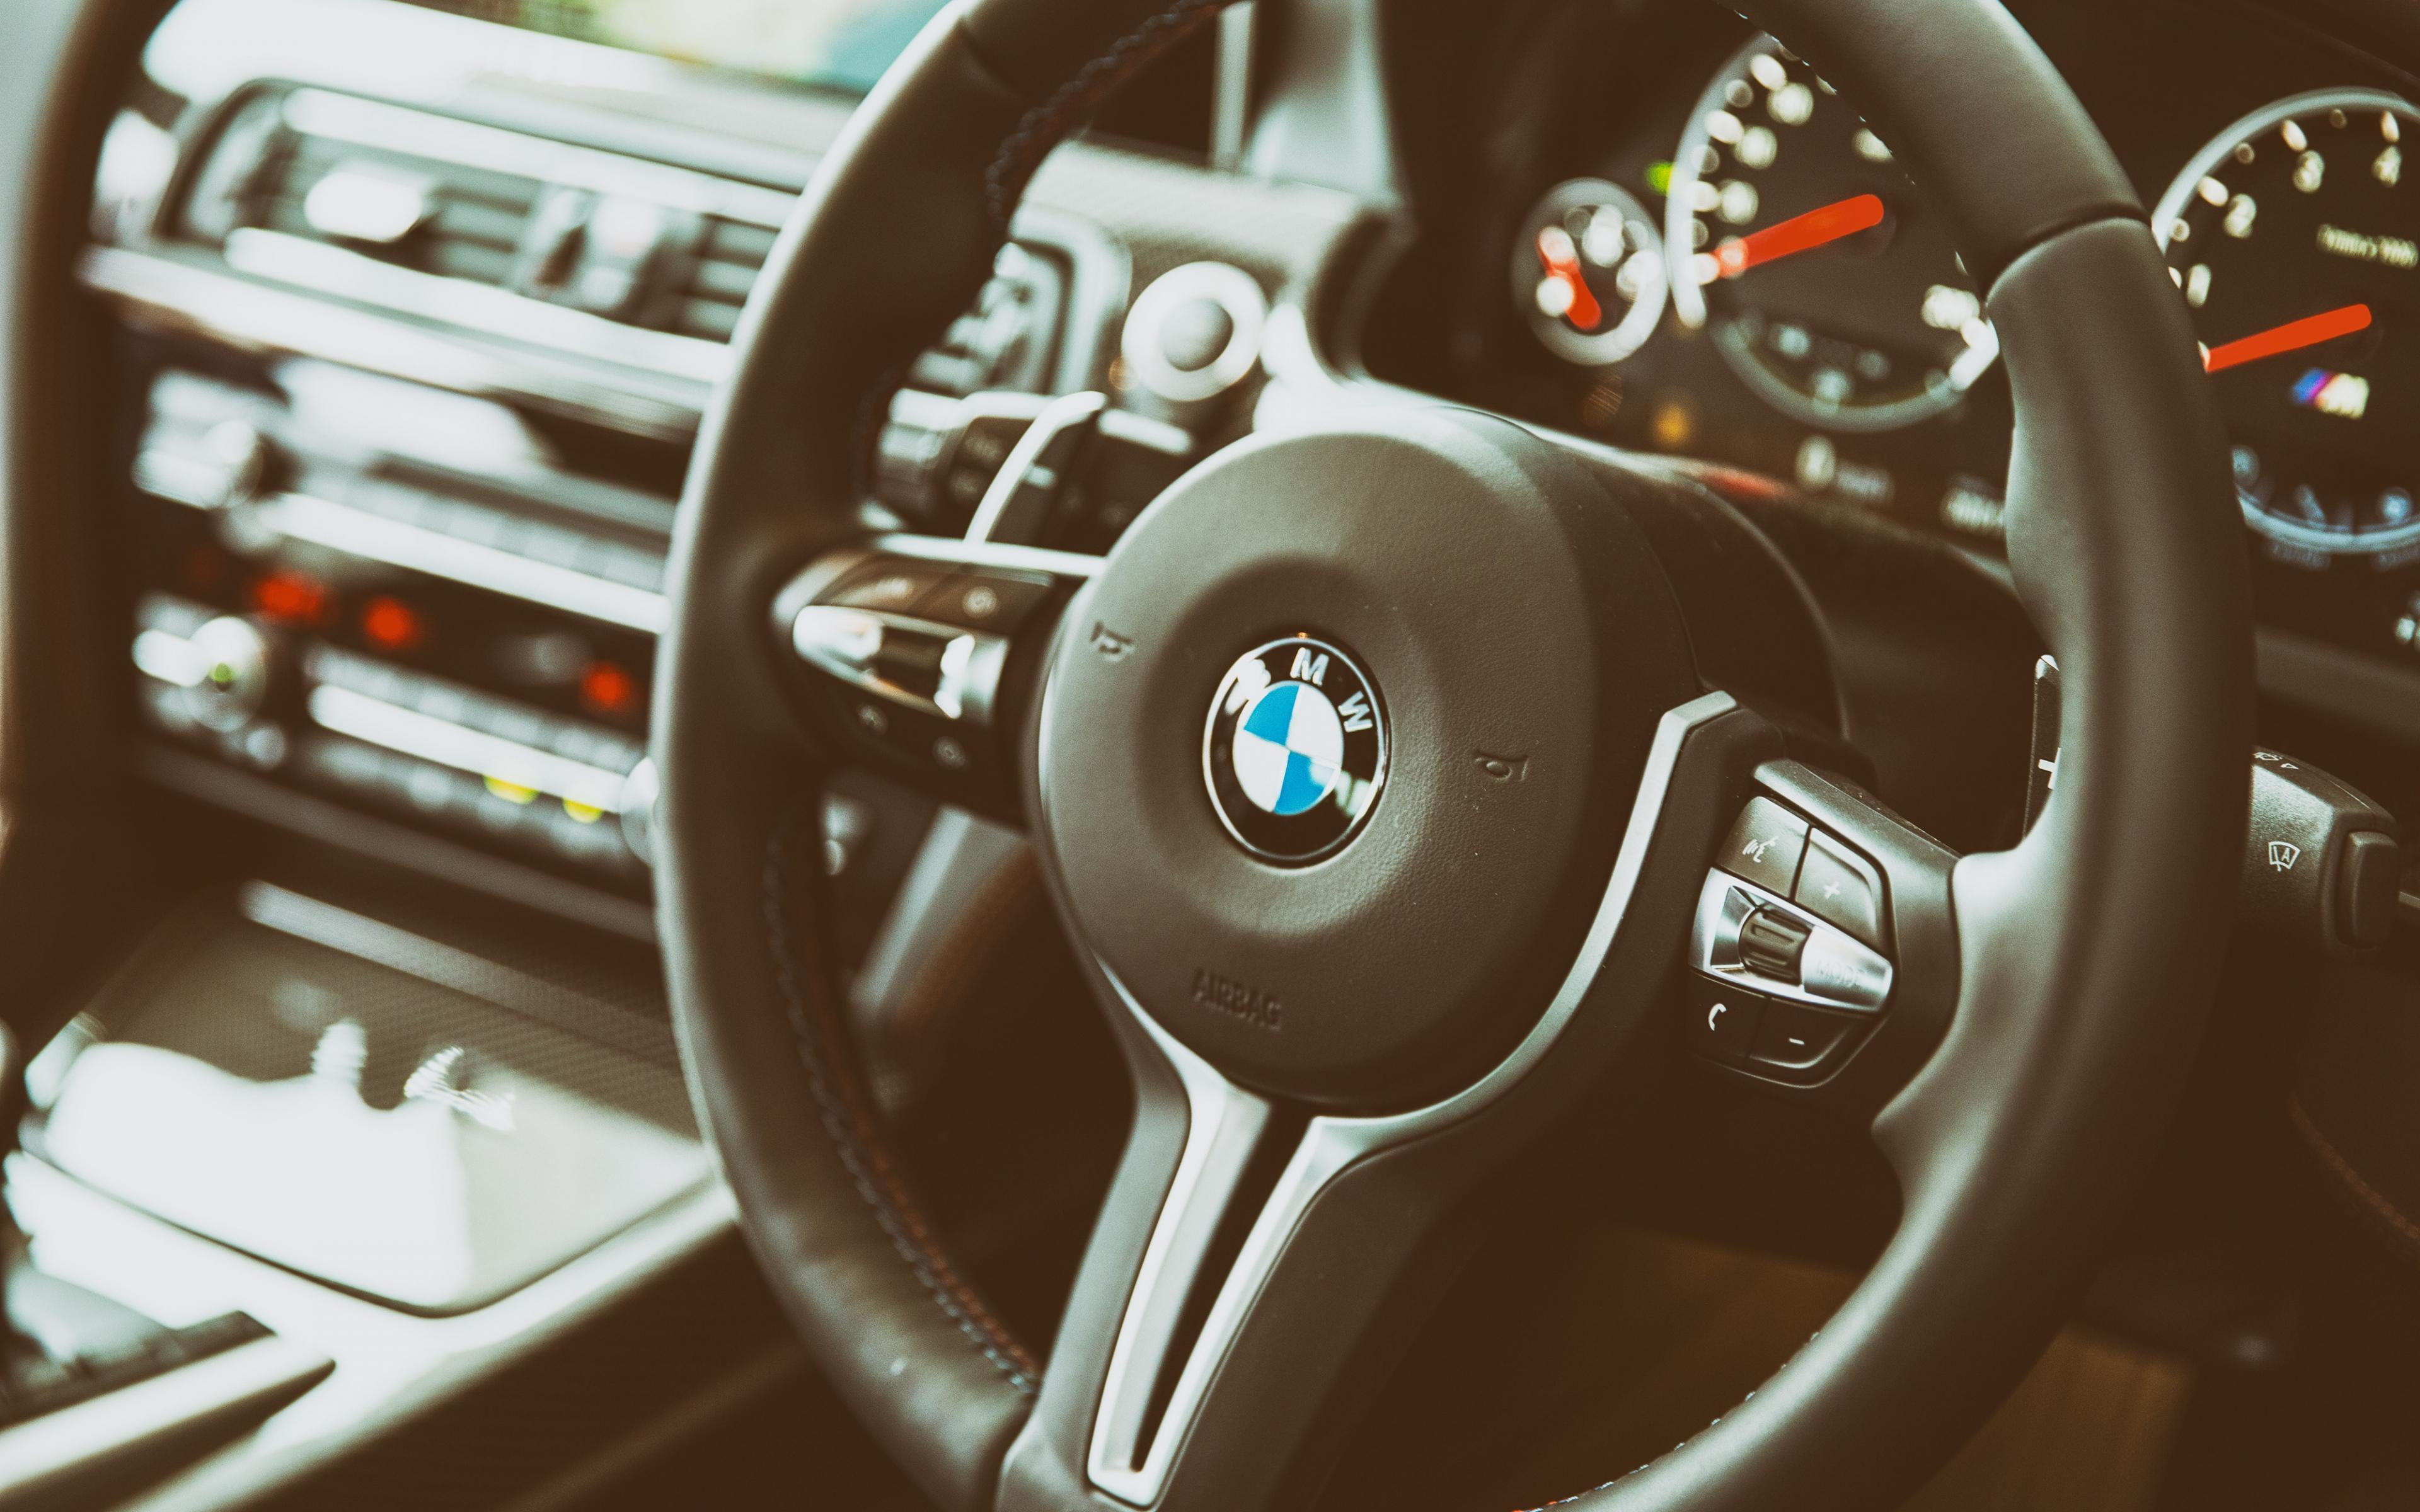 BMW M6 Steering Wheel Interior HD Backgrounds Wallpapers